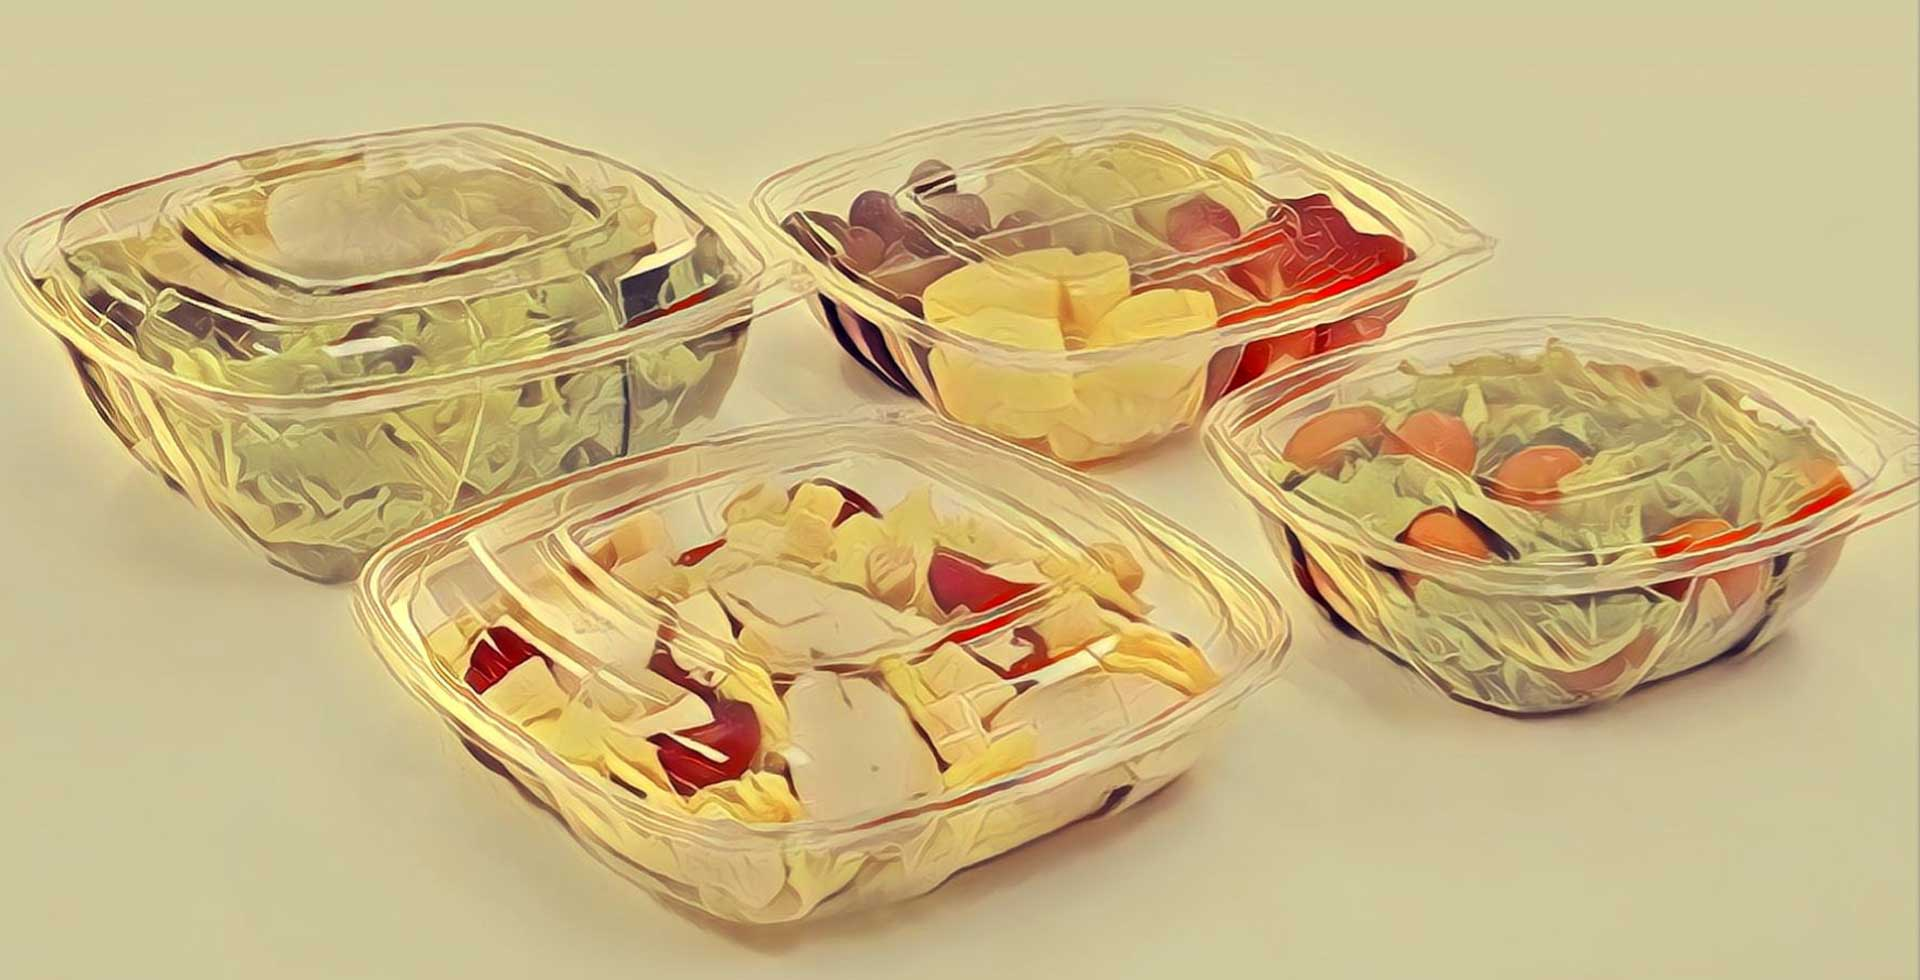 B2B Wholesale prices on quality salad Bowls, salad containers,  sandwich wedges, plastic containers